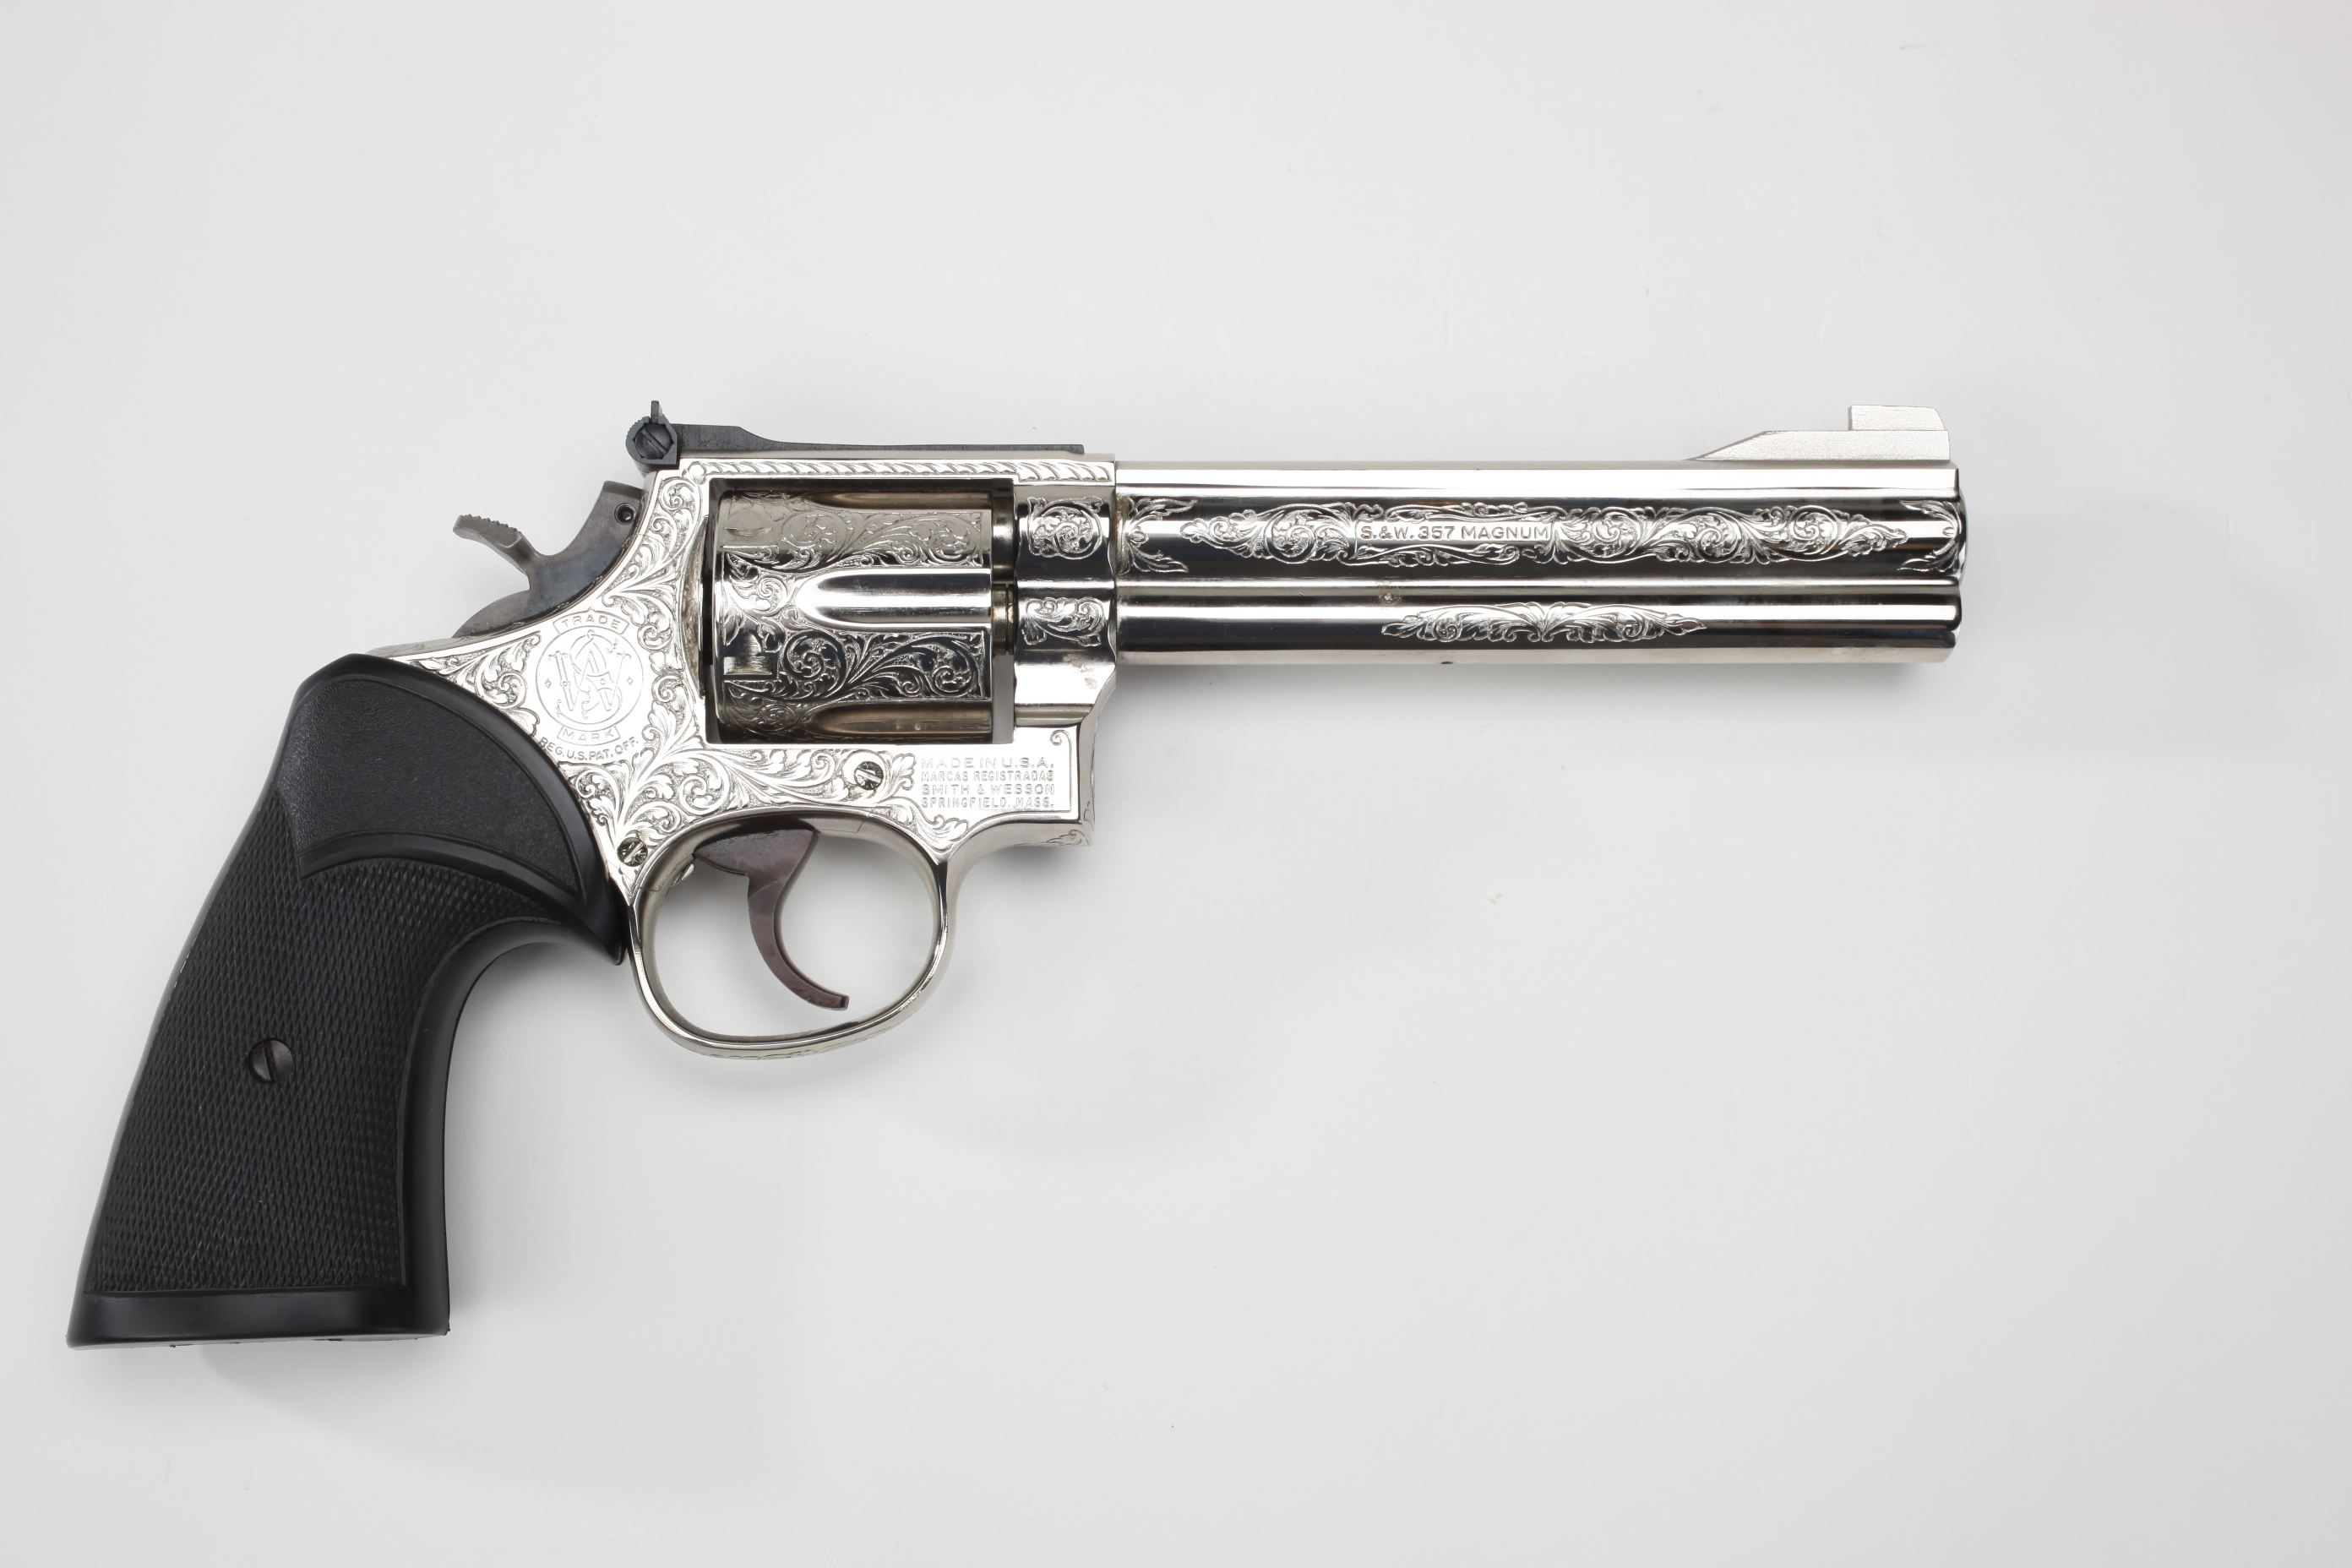 Smith & Wesson Model 586 Double-Action Revolver w/ Pachmayr grip panels